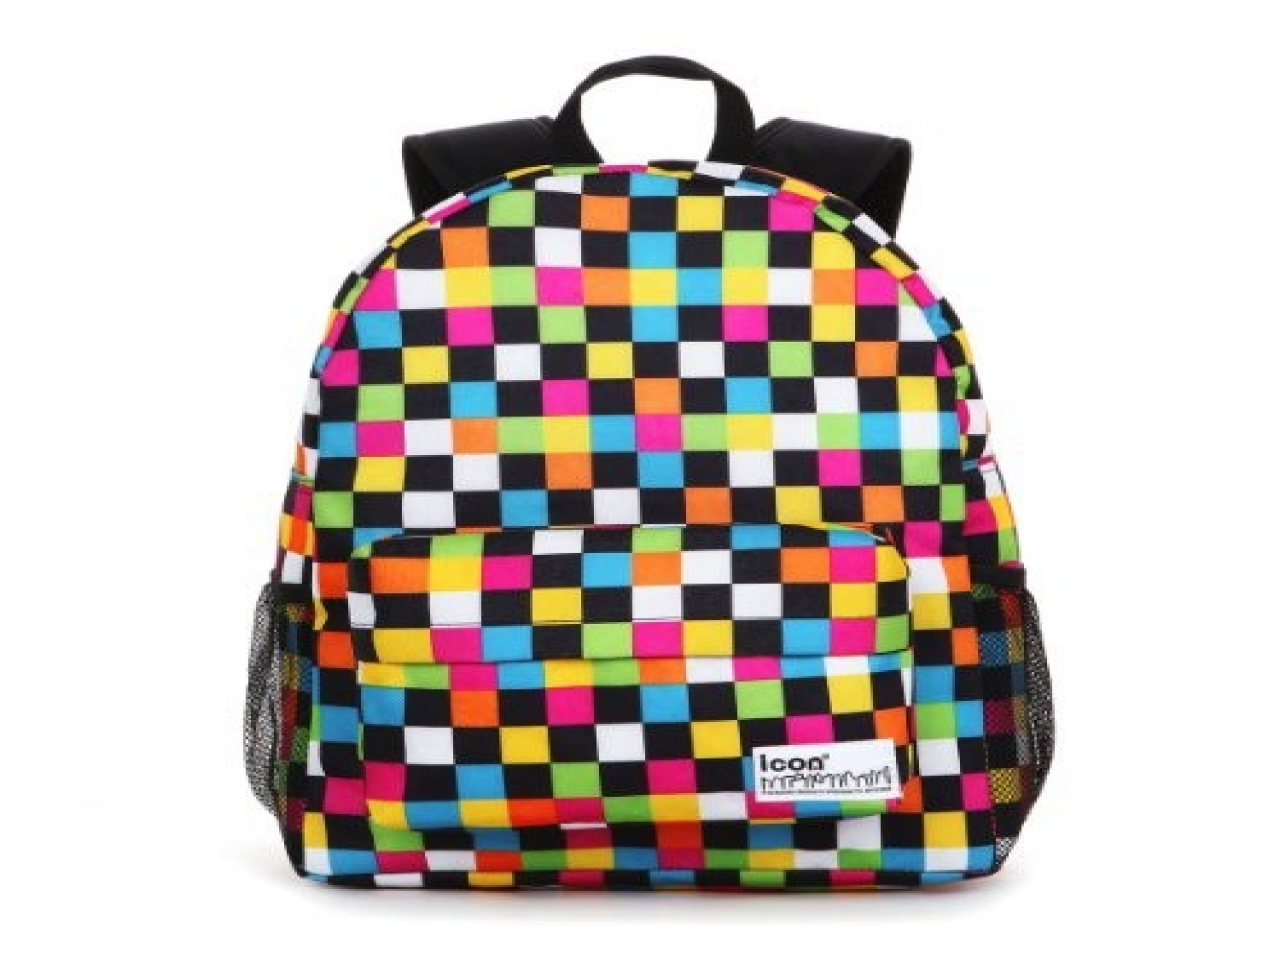 Cool Backpacks For Teenage Girls sJRBnbKr